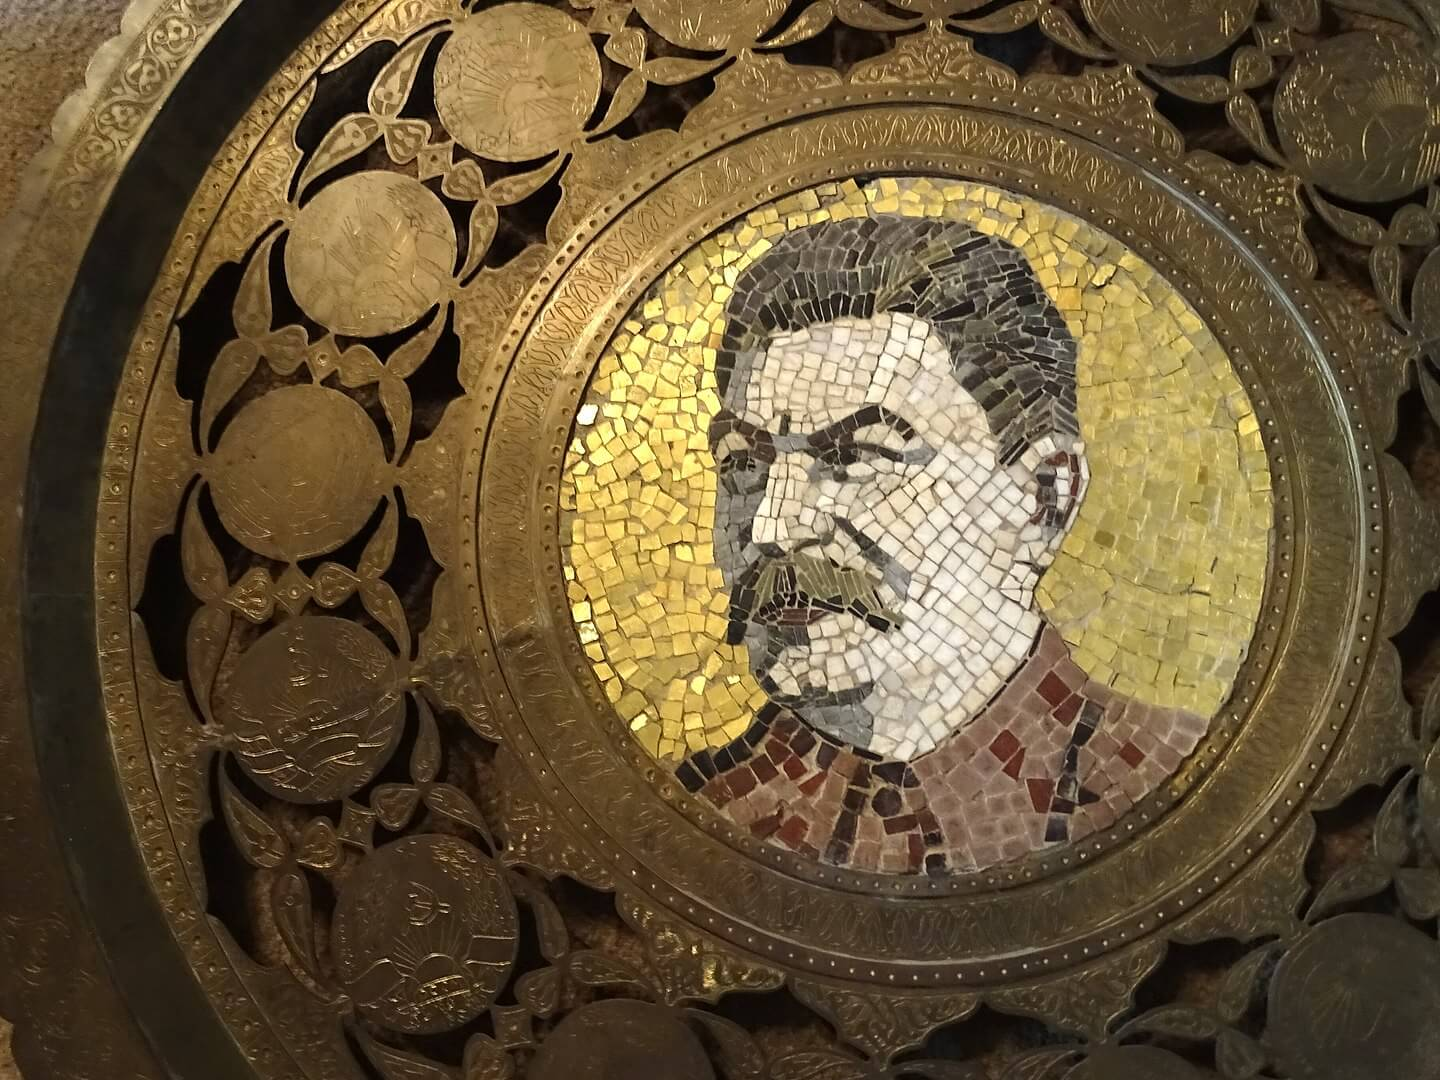 Klijn-Detail of Mosaic Portrait in the Stalin Museum in Gori Georgia. By Adam Jones from Kelowna, BC, Canada - Detail of Mosaic Portrait - Gift to Stalin on 70th Birthday - Stalin Museum - Gori - Georgia, CC BY-SA 2.0